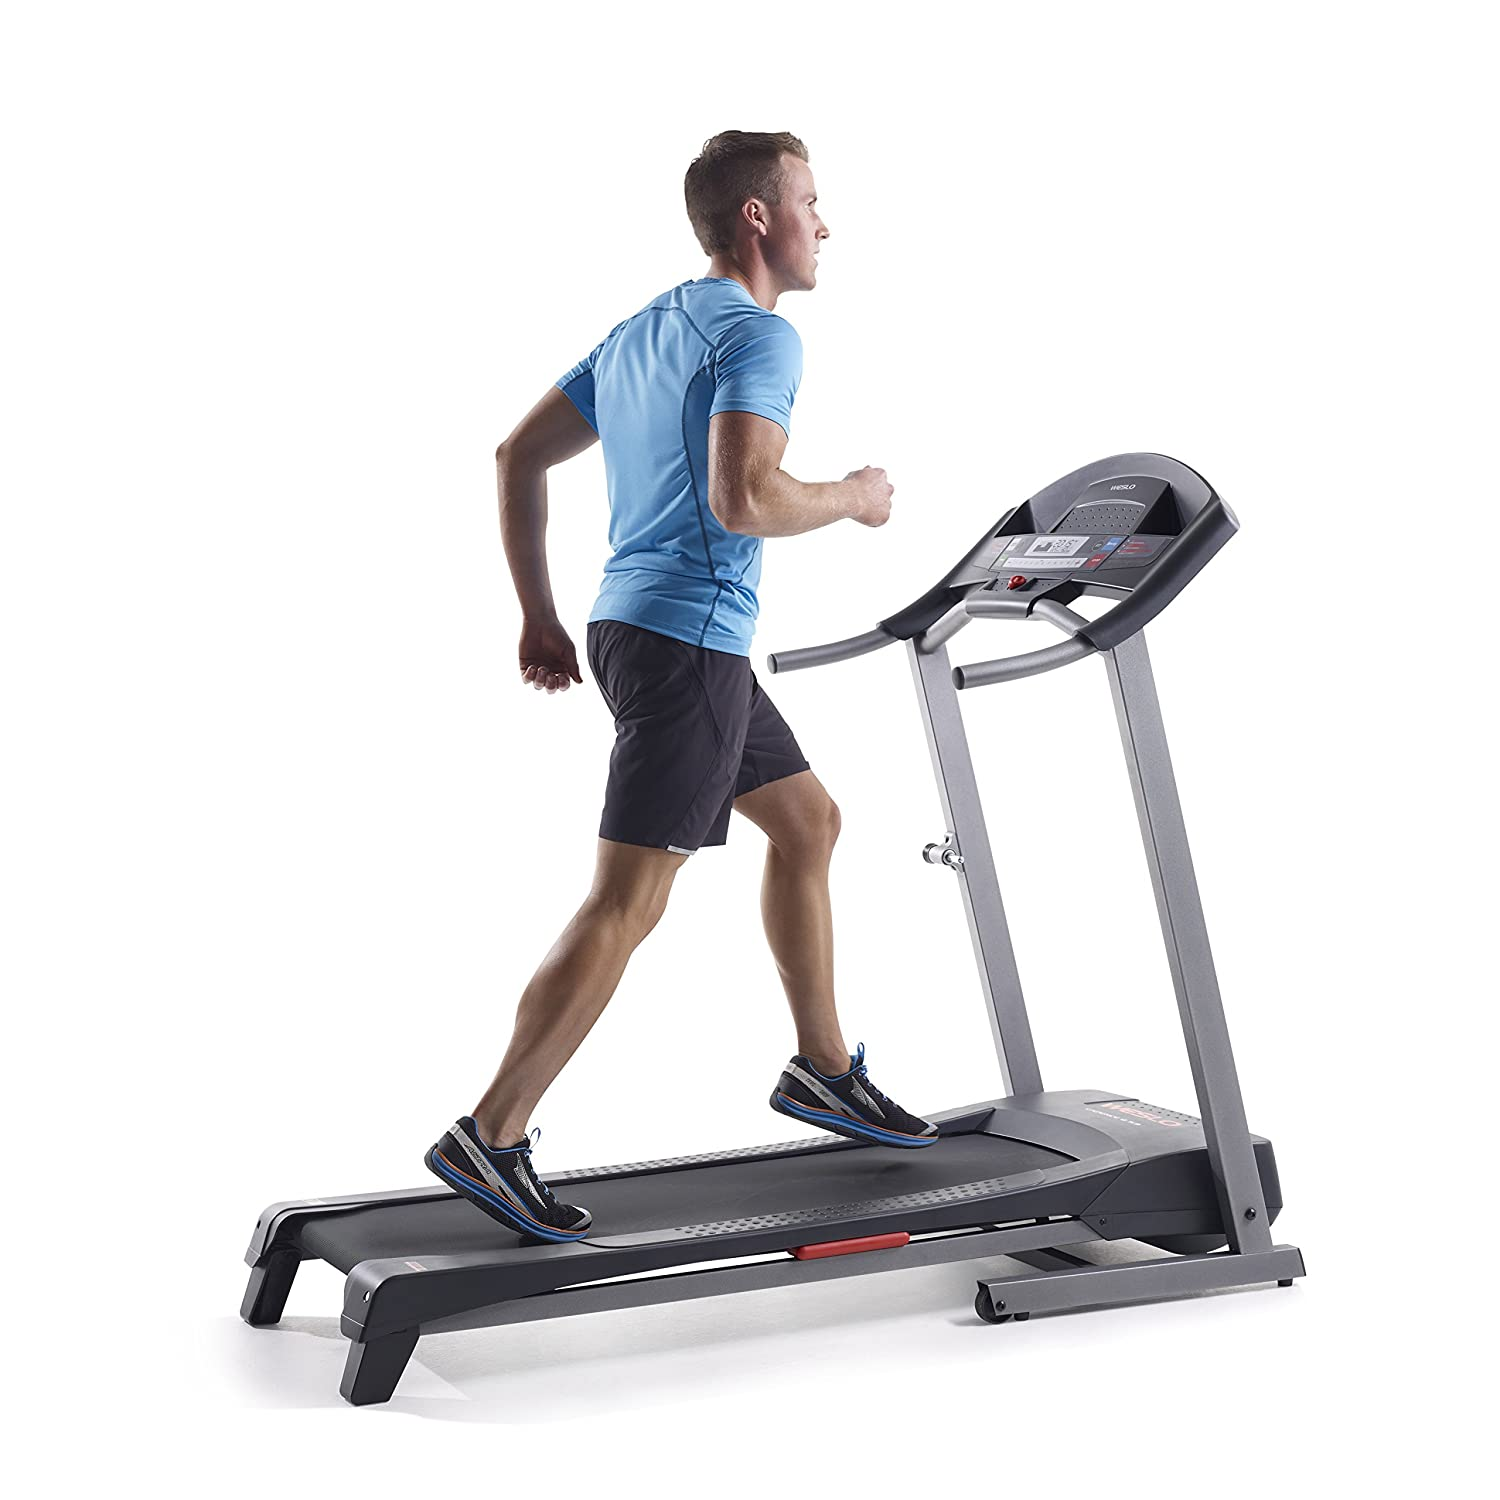 Weslo Cadence G 59i Treadmill Black See A Robot Workout Wltl29615 Sports Outdoors